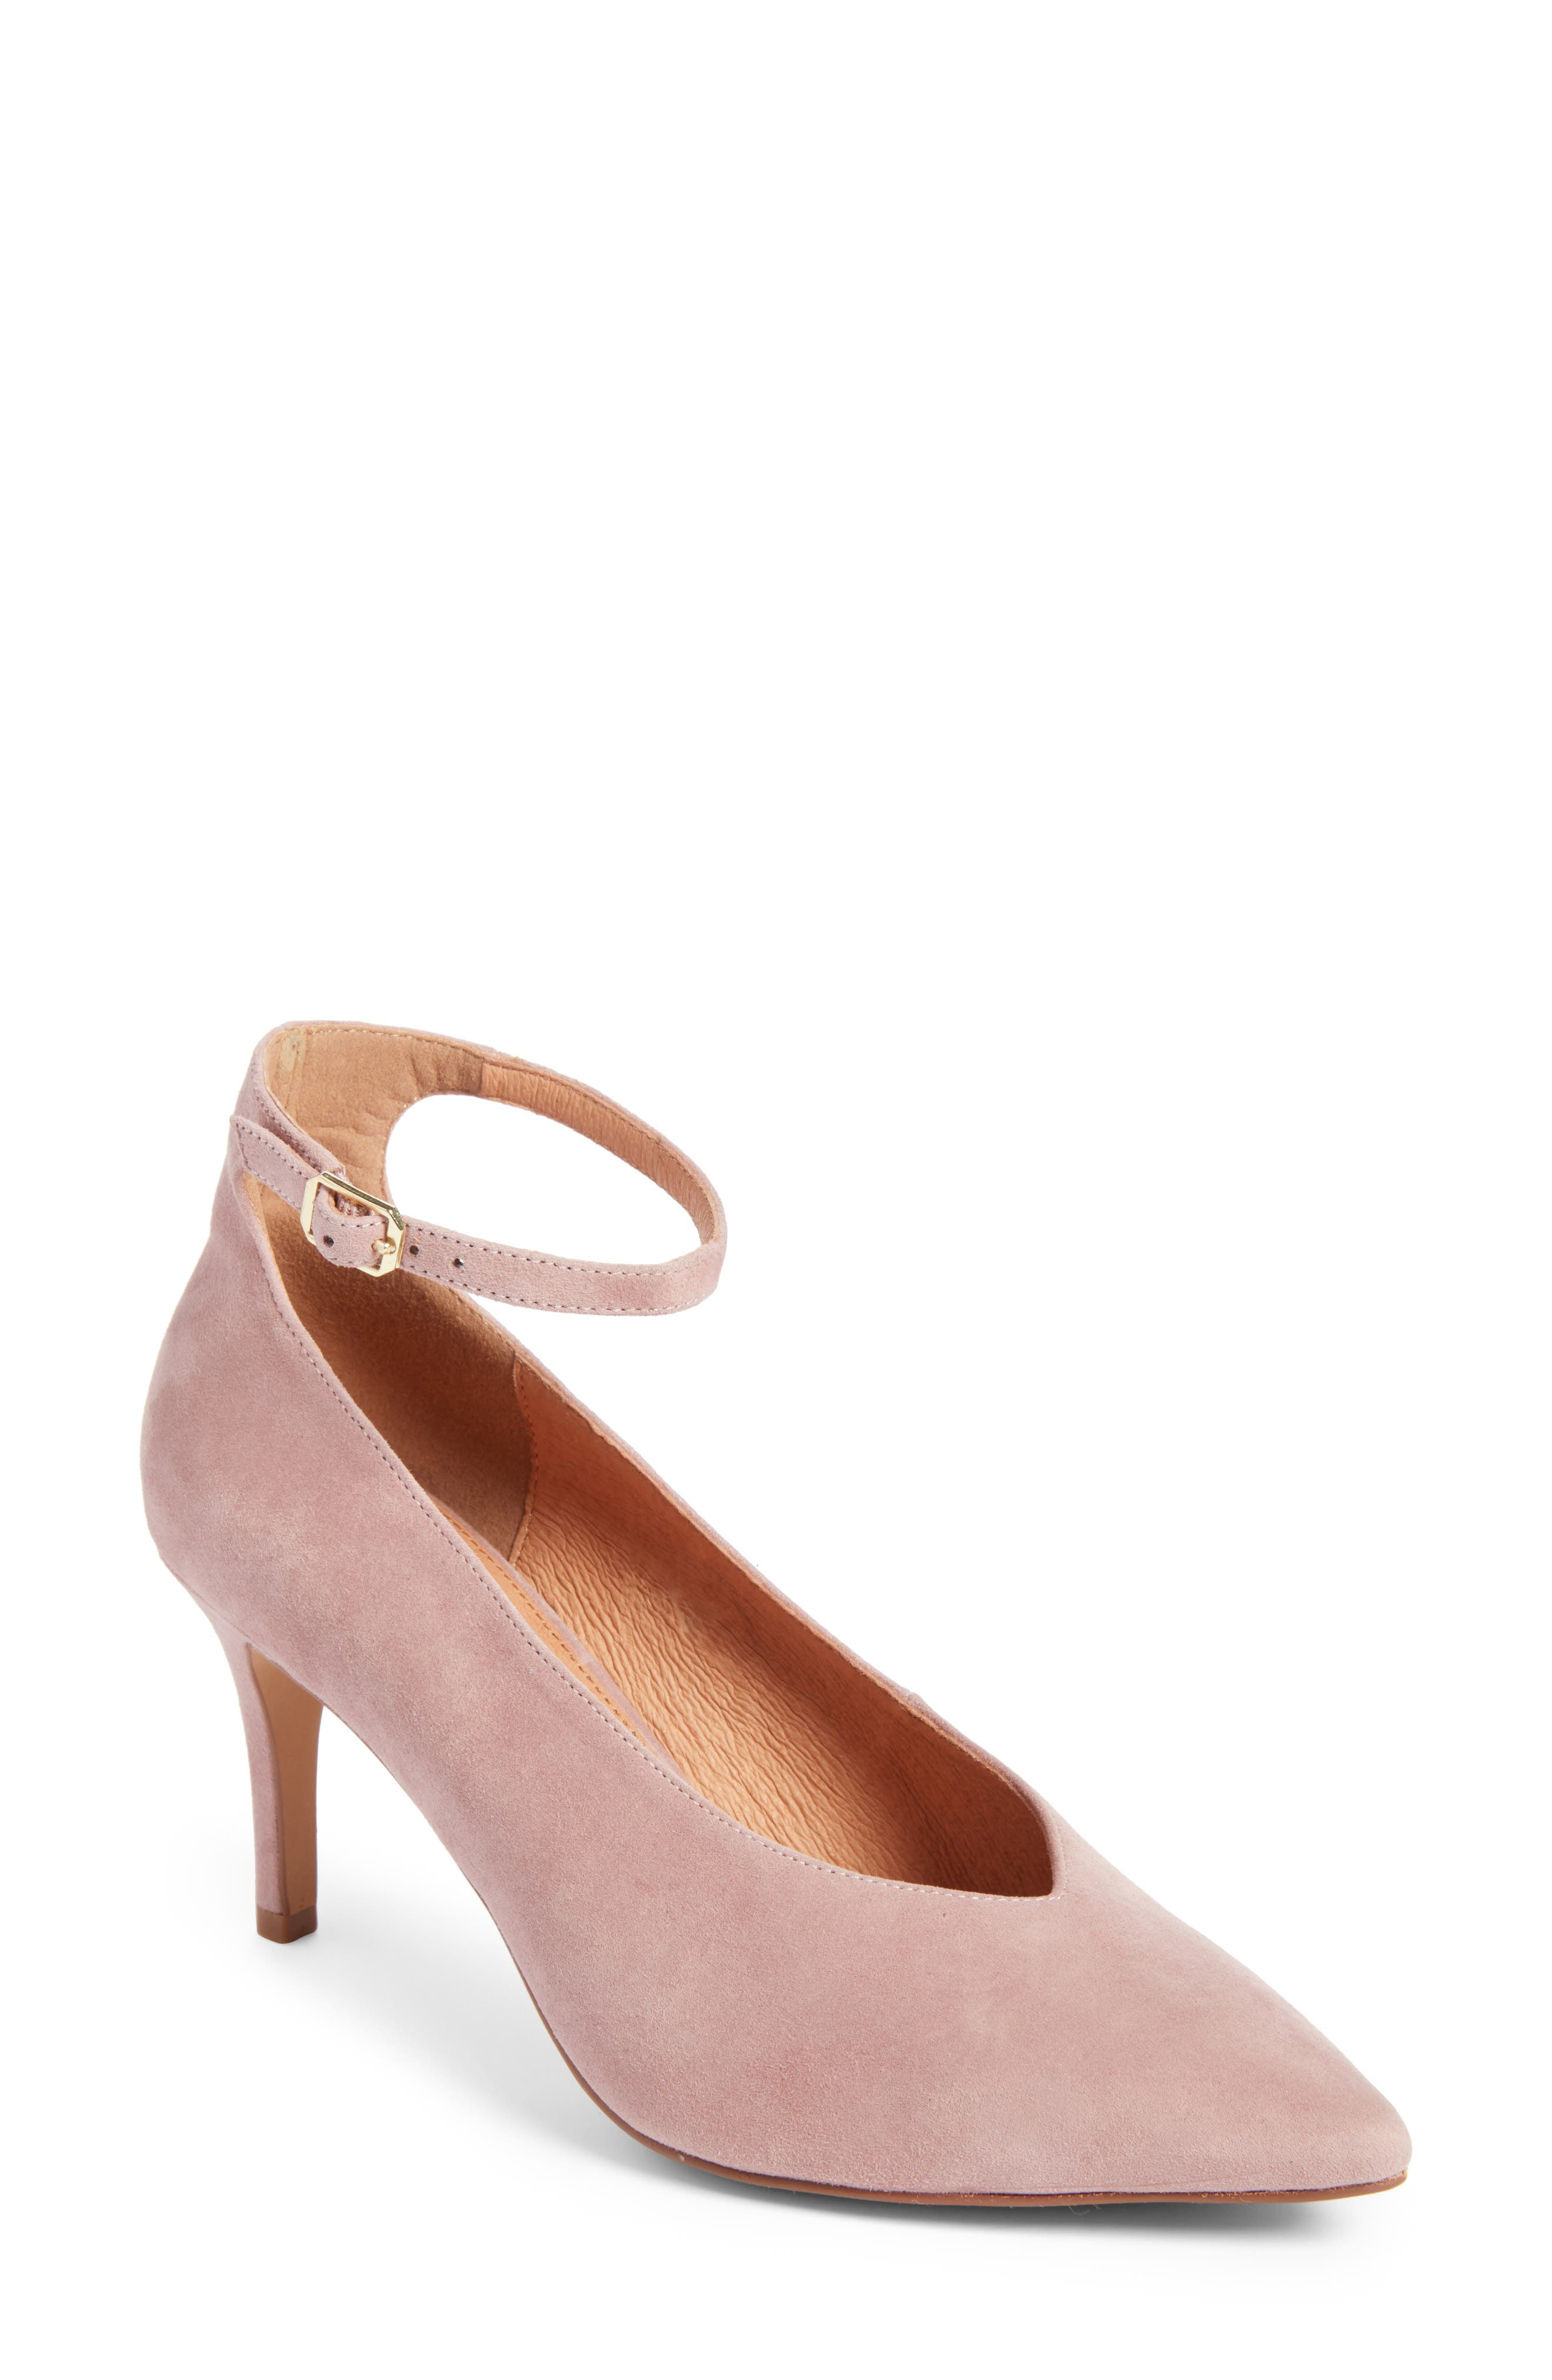 Azaela Ankle Strap Pump,                             Main thumbnail 1, color,                             Dark Pink Suede